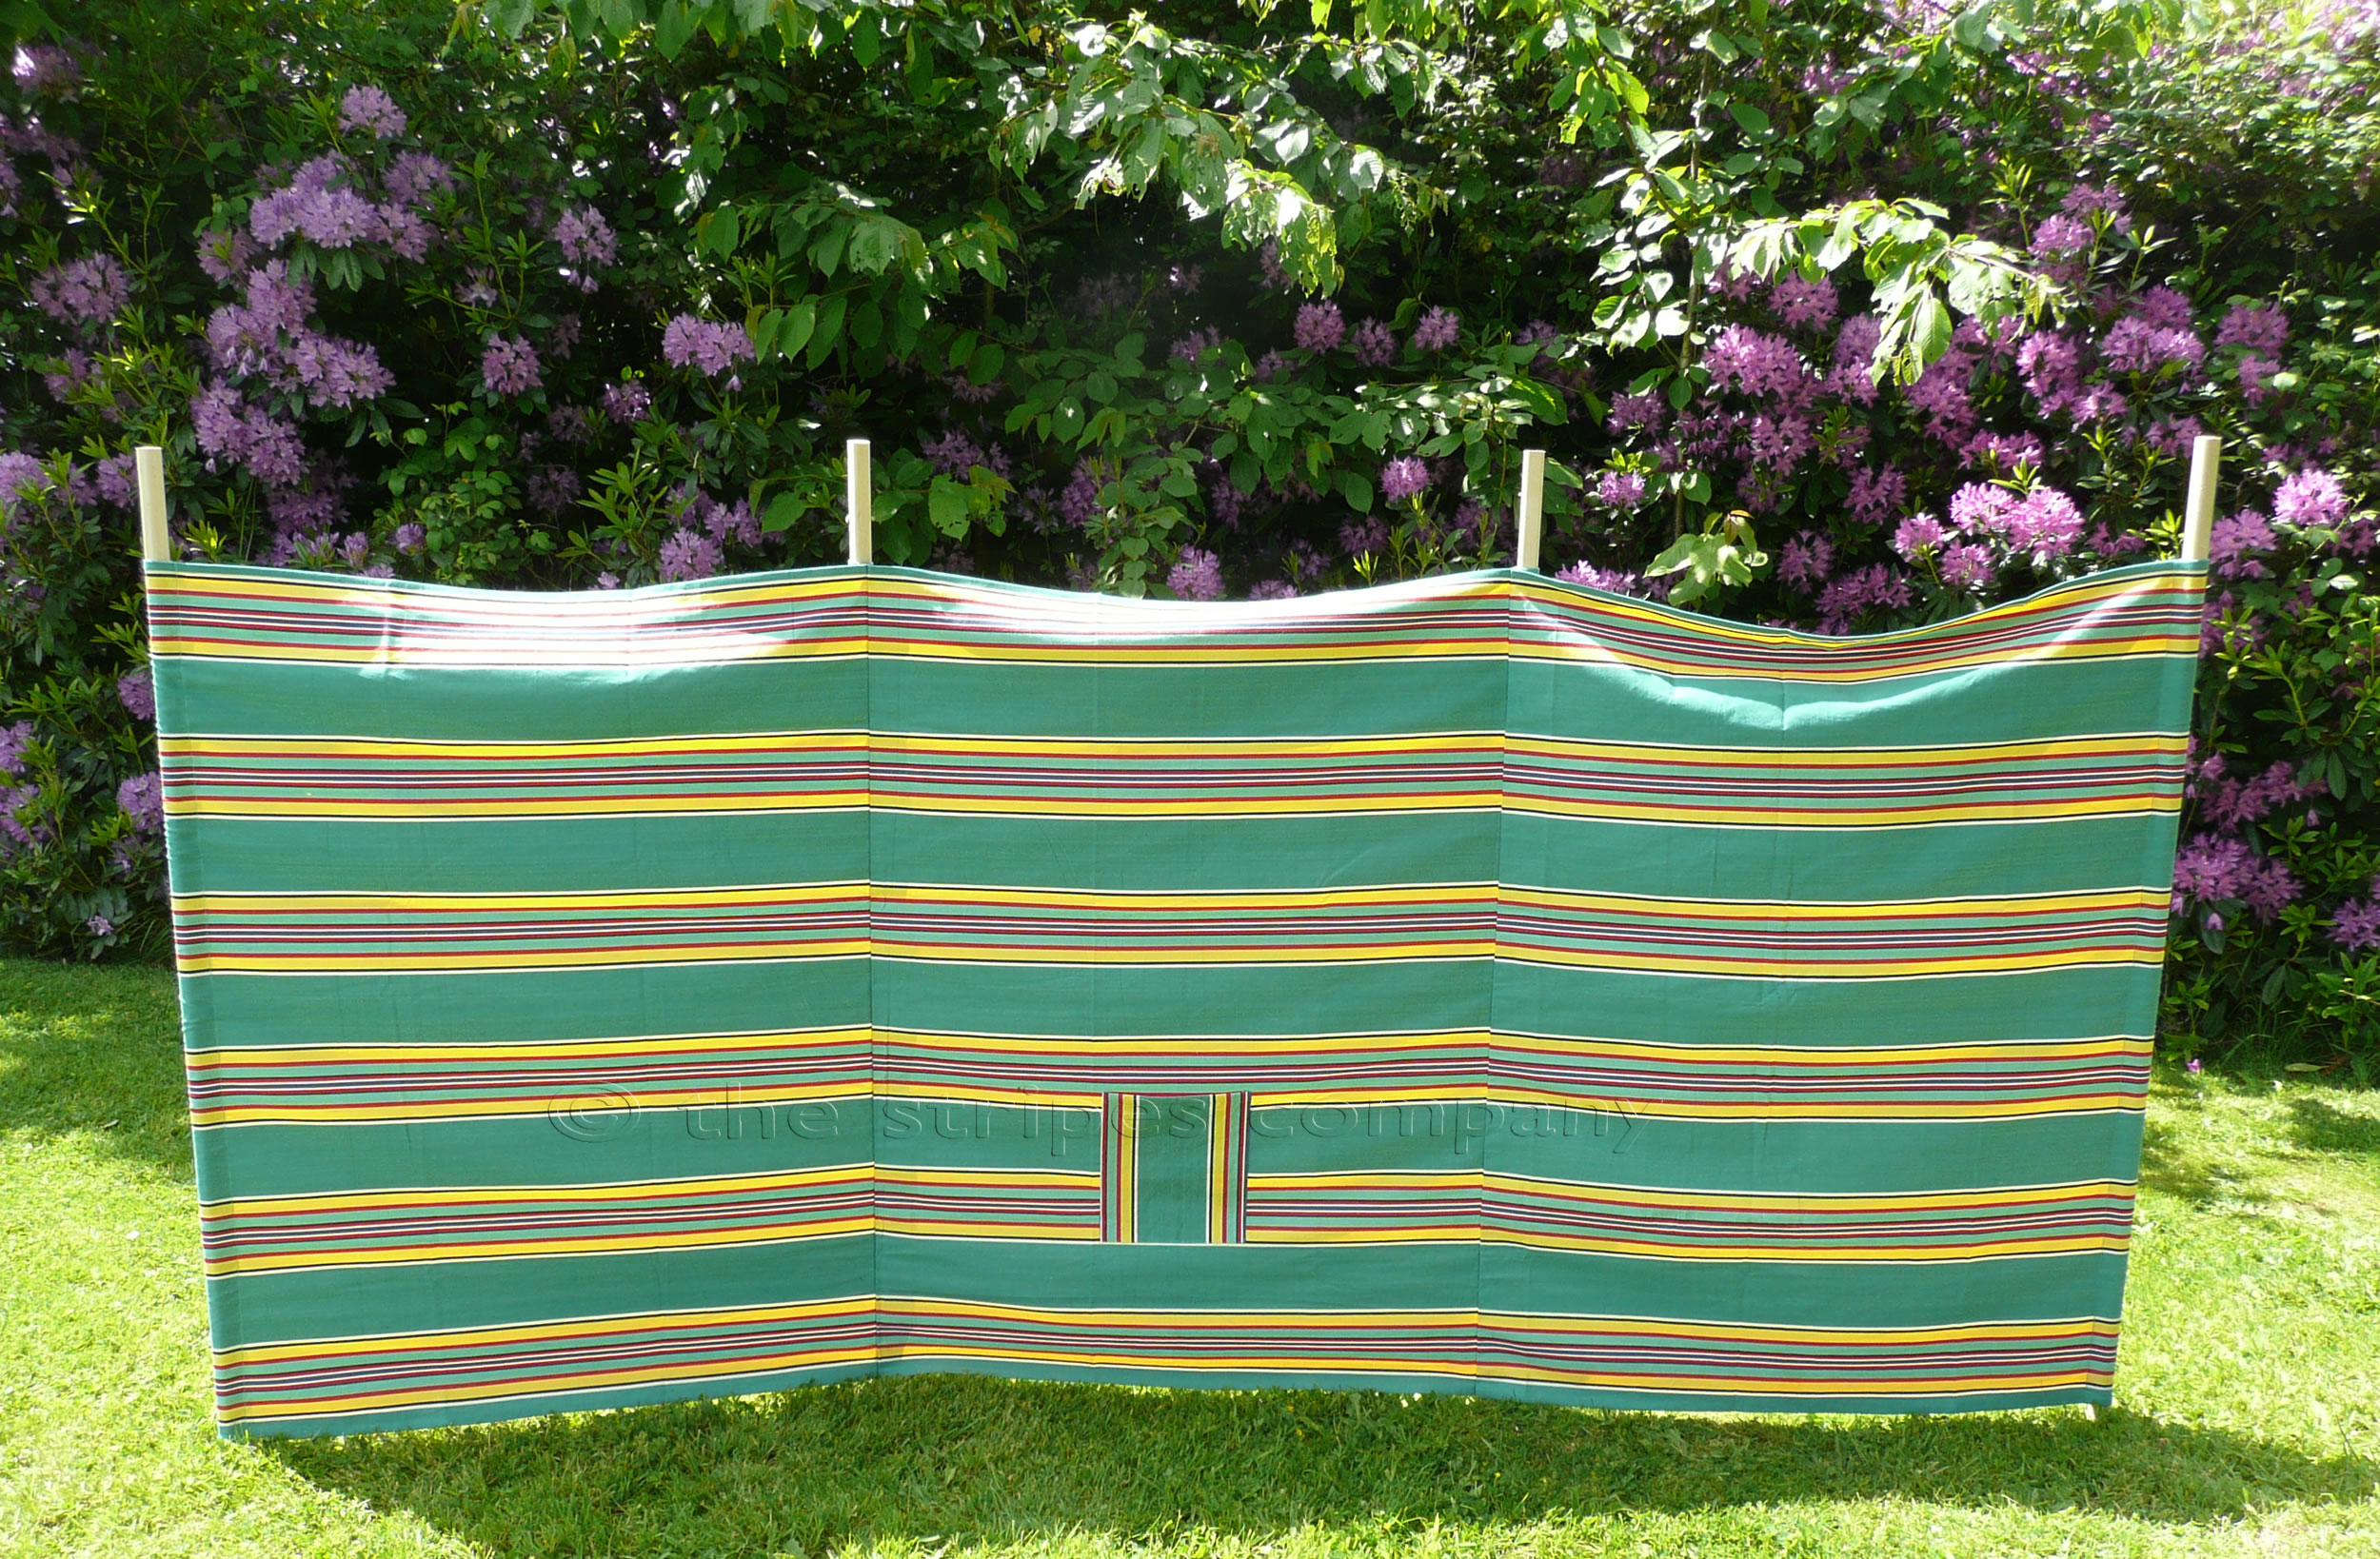 Golf Retro Green Stripe Windbreak from The Stripes Company